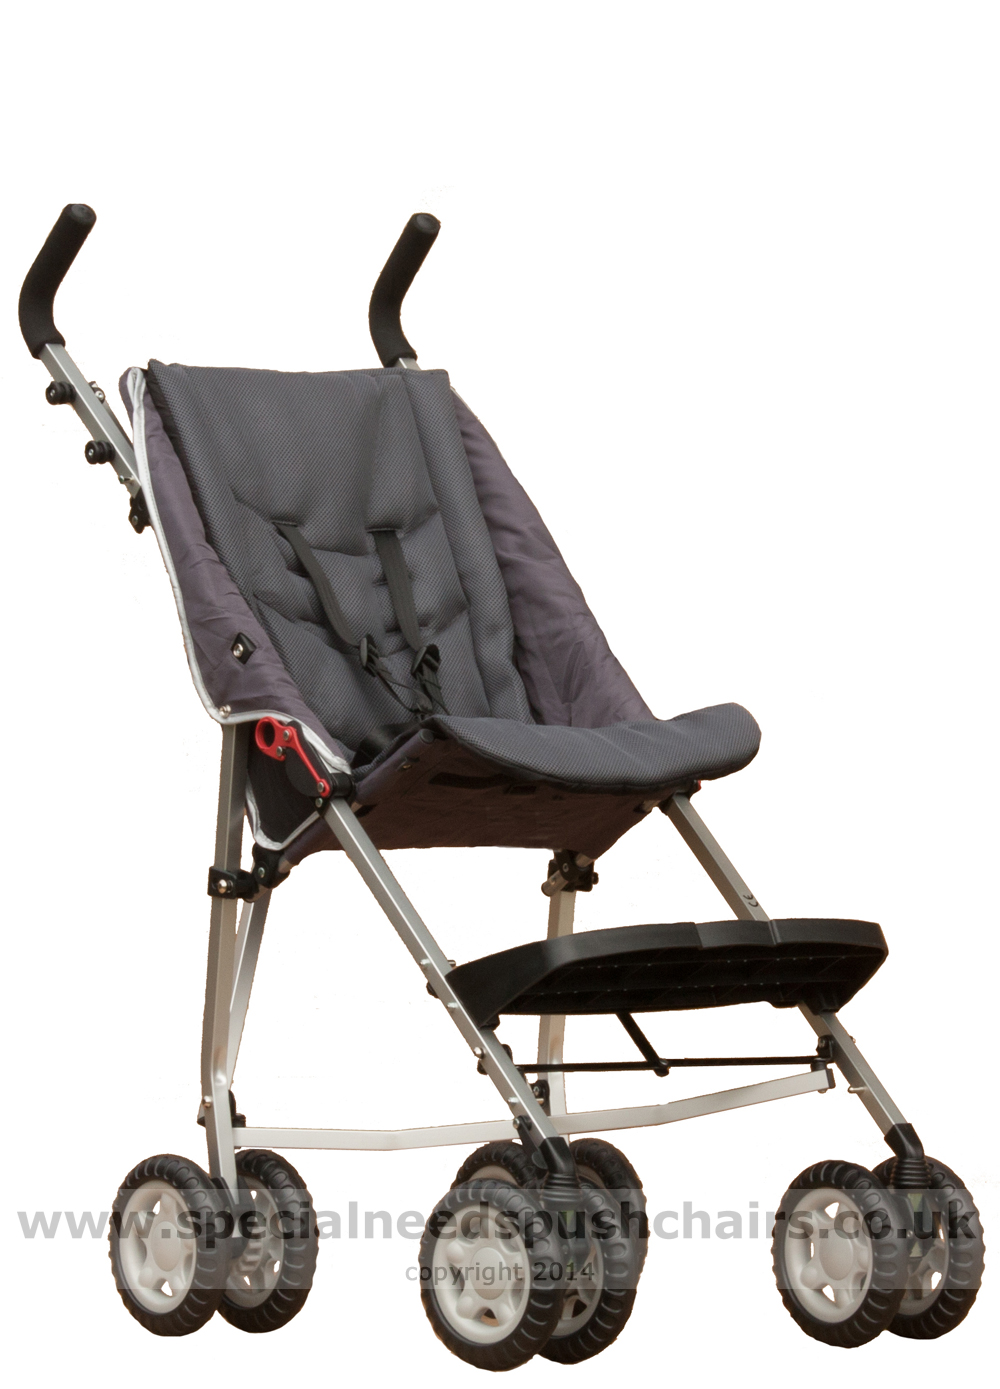 Orchard Farm Ltd Padded Seat Liner For The DoAbility Buggy